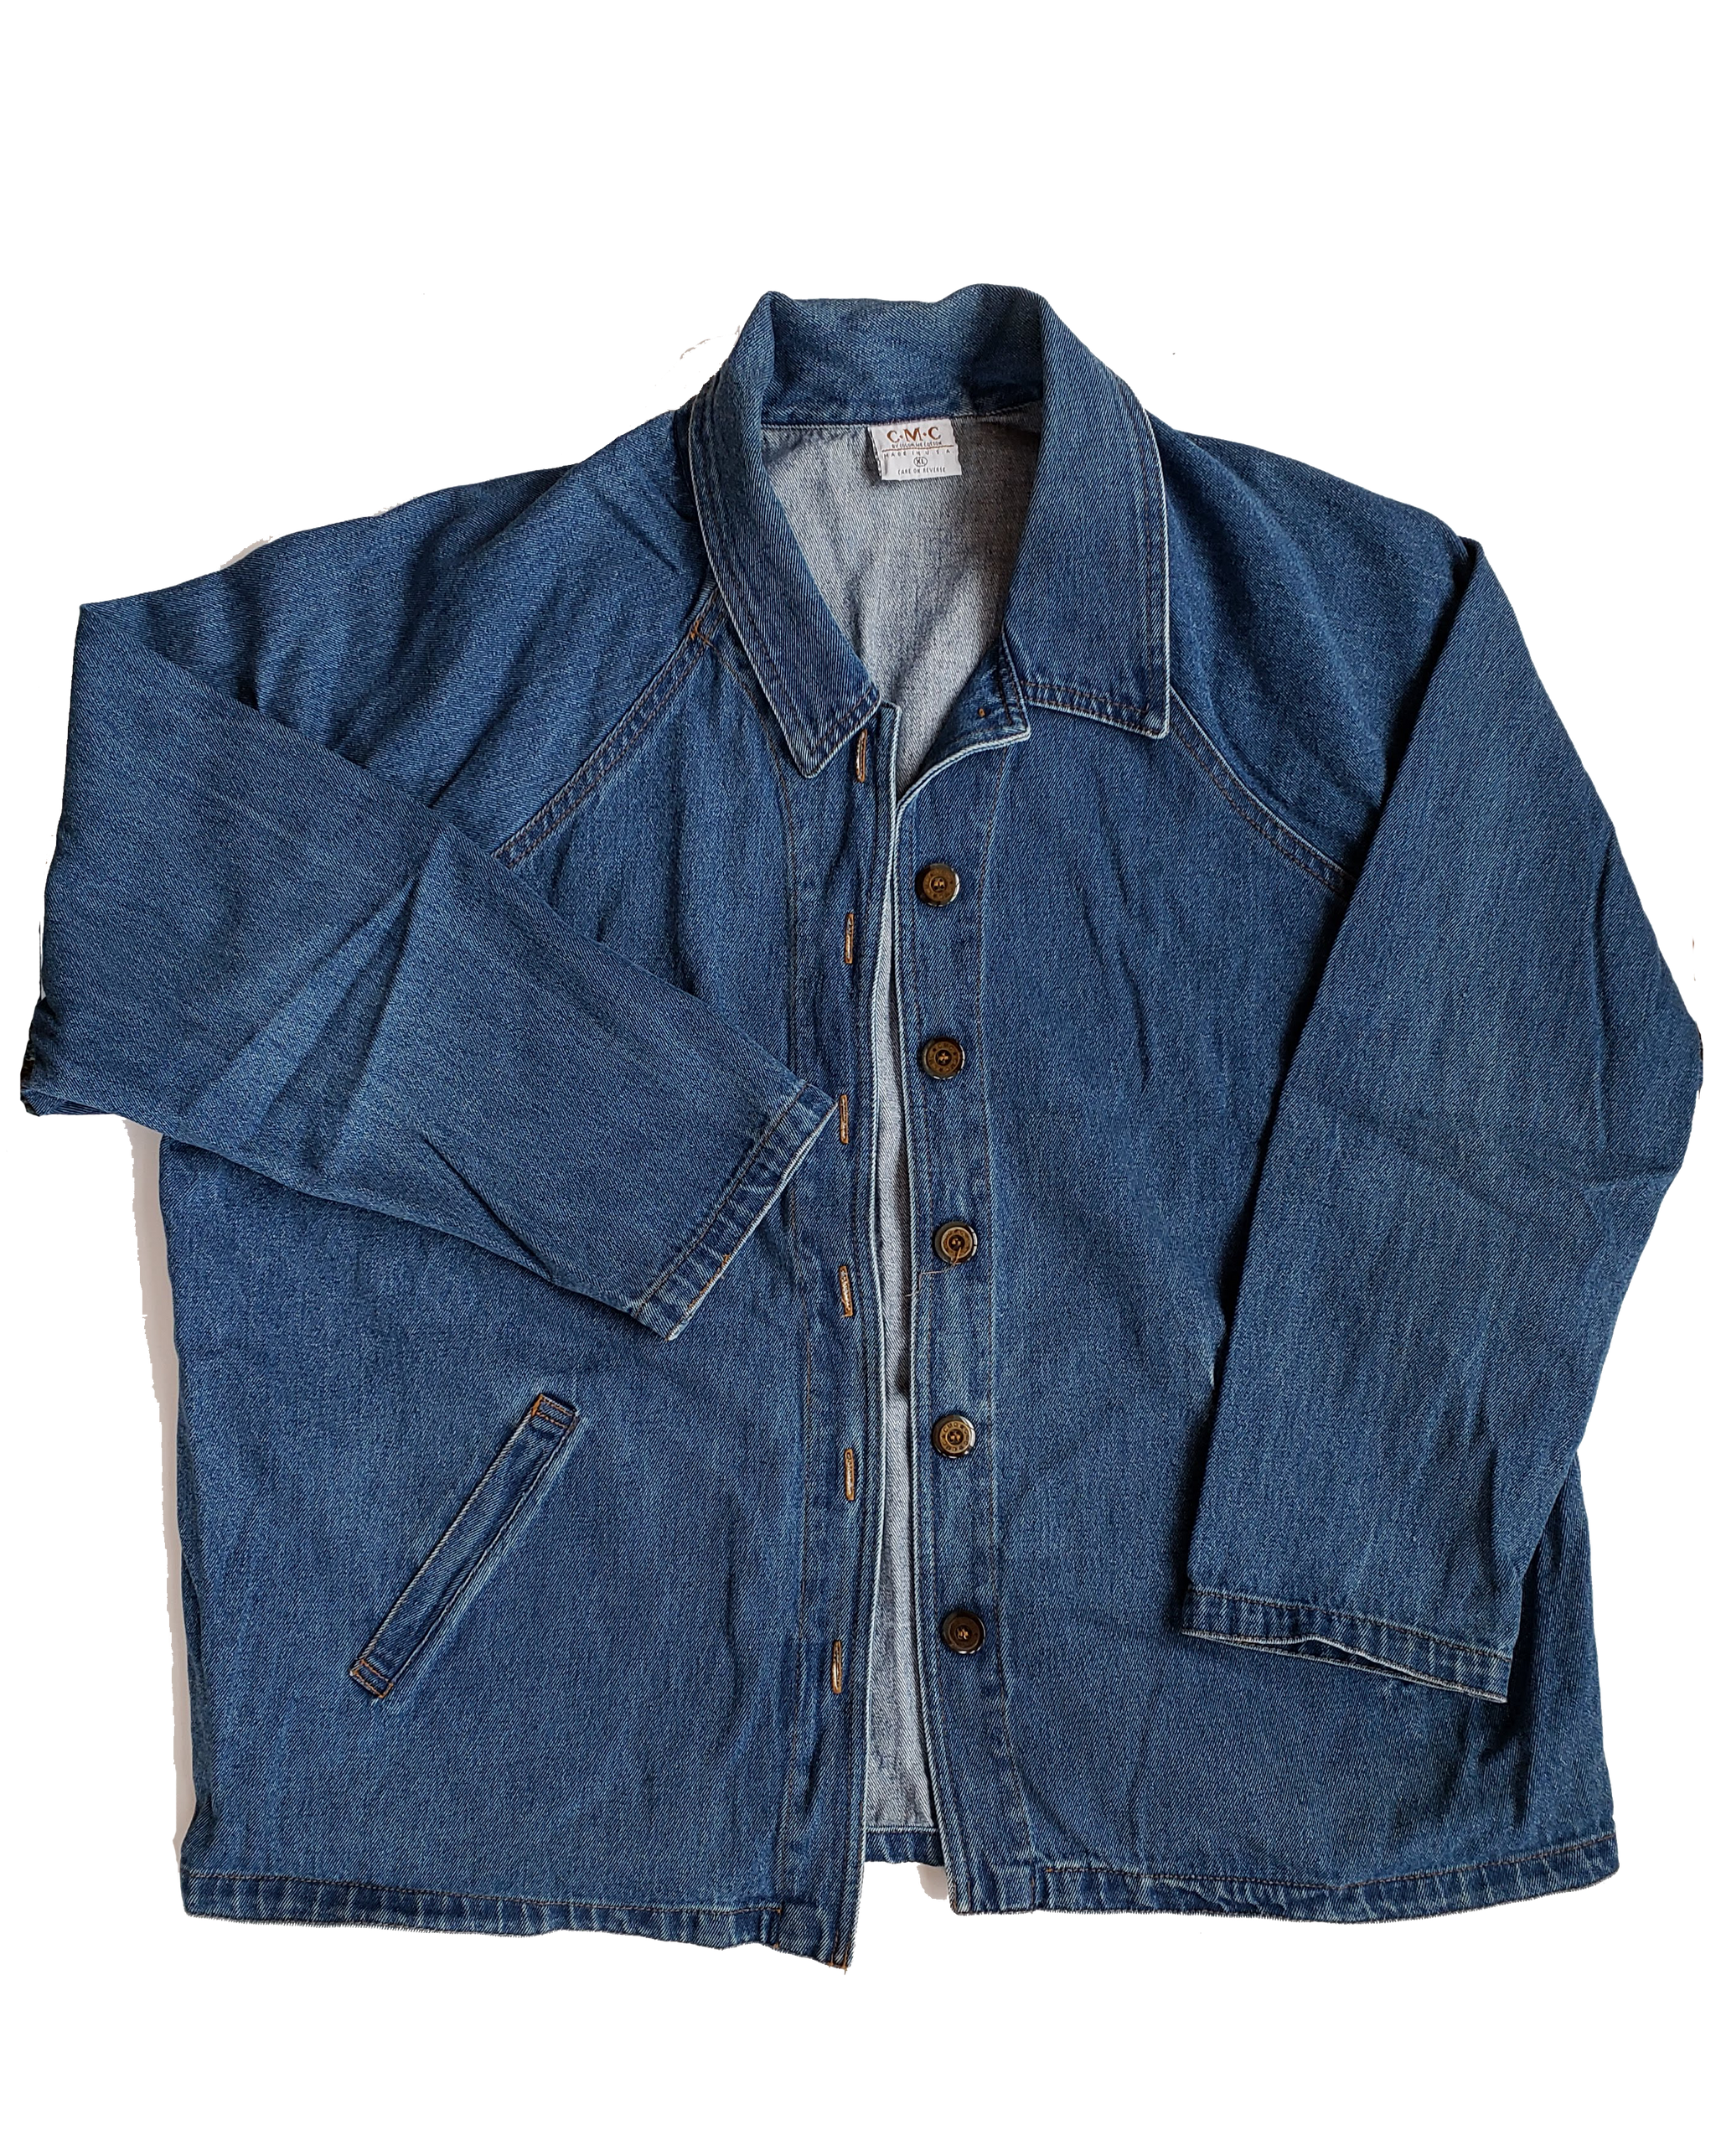 Vintage Rad 90's Over-sized Light Denim Jacket